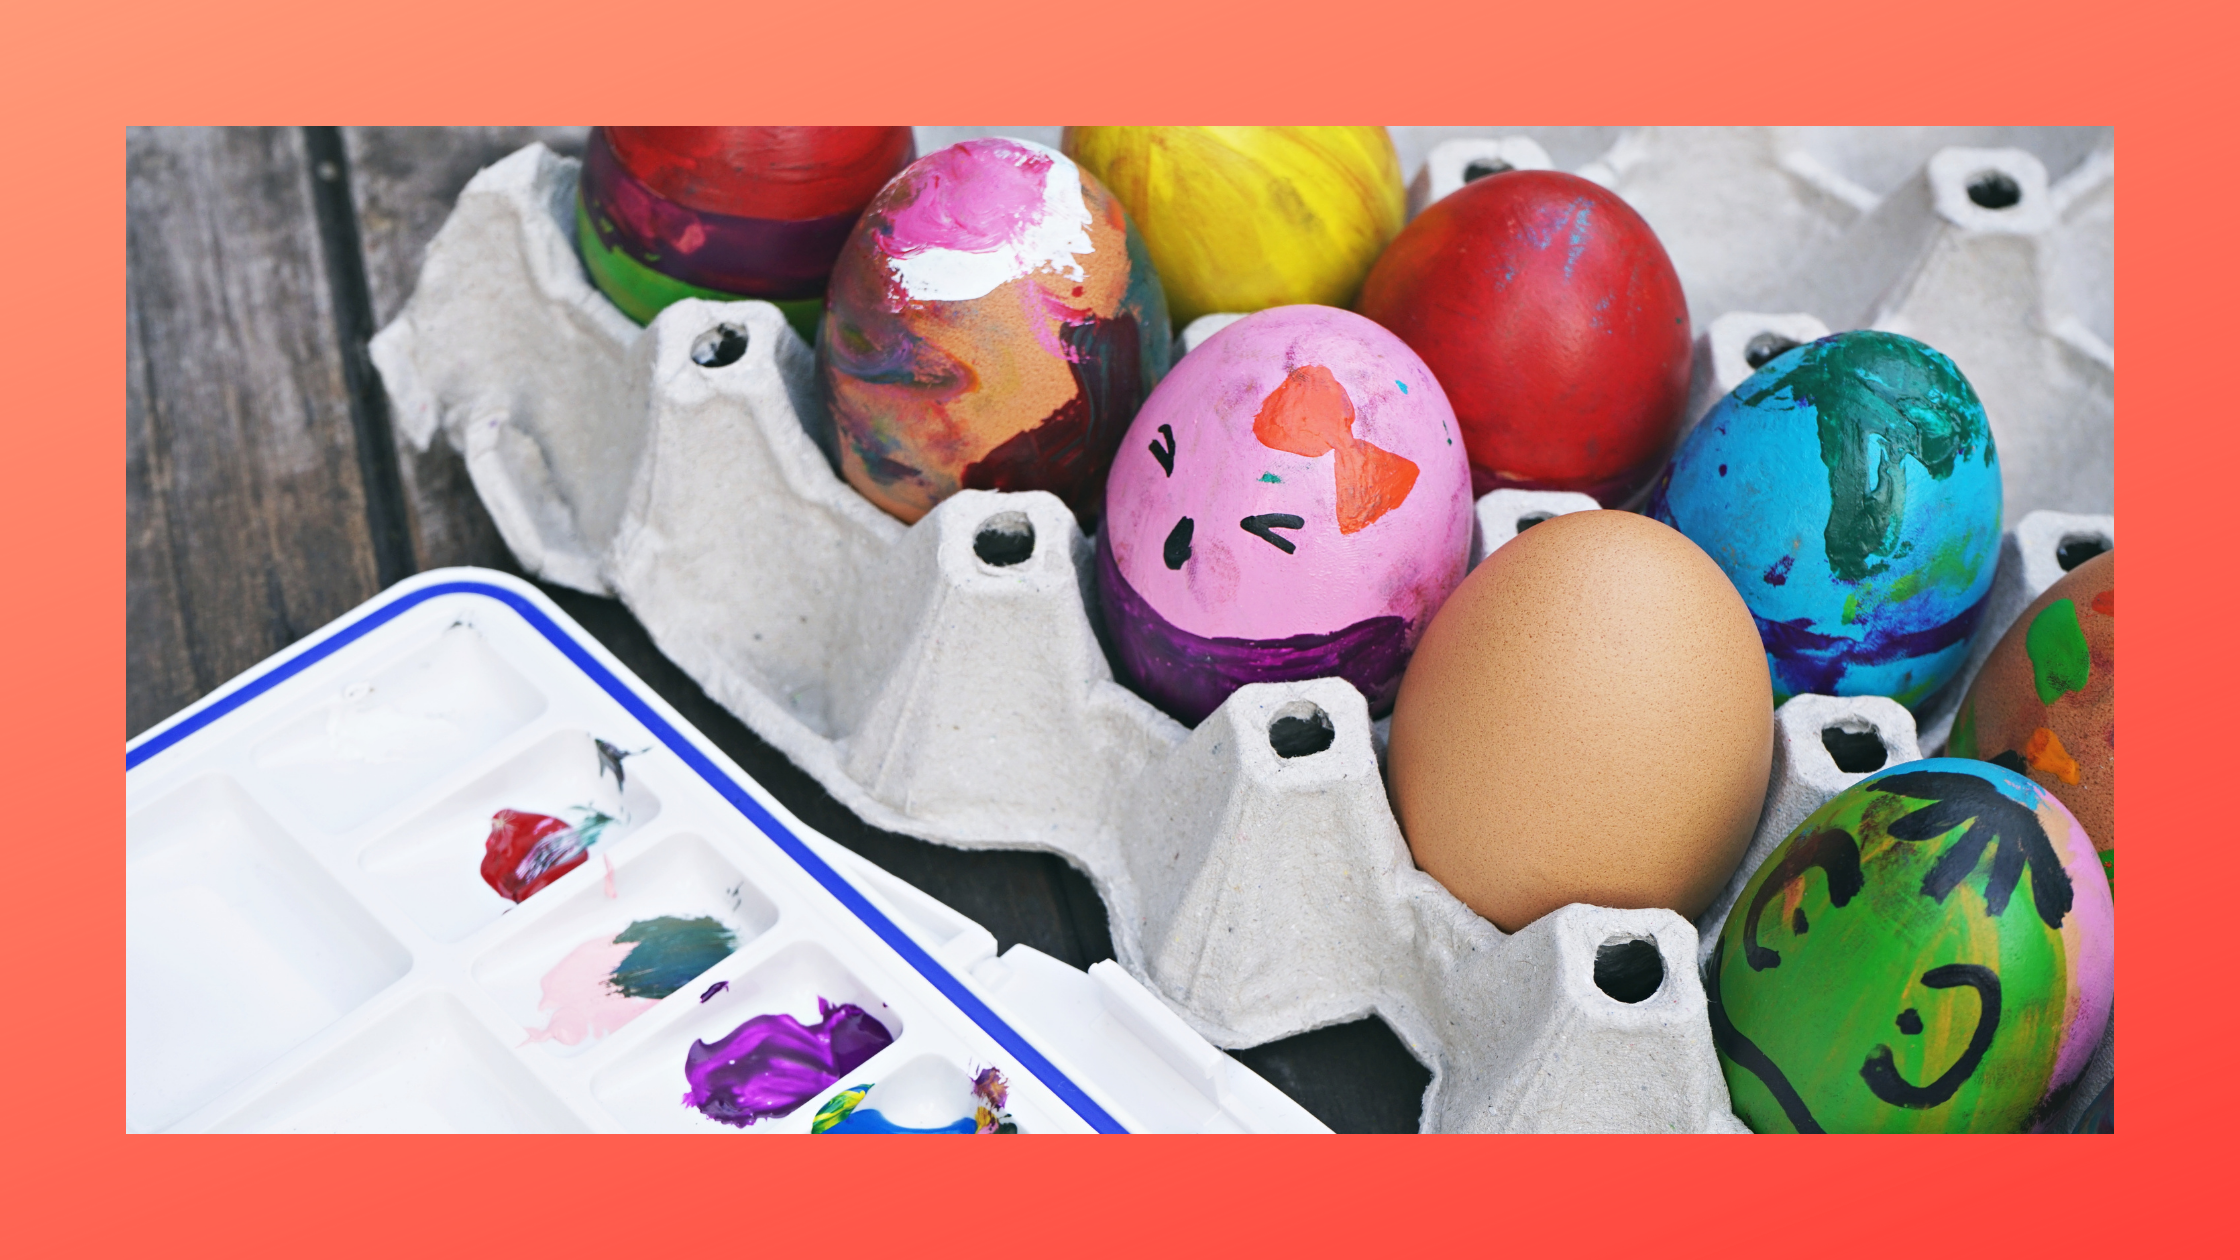 decorated eggs in an egg carton national egg day